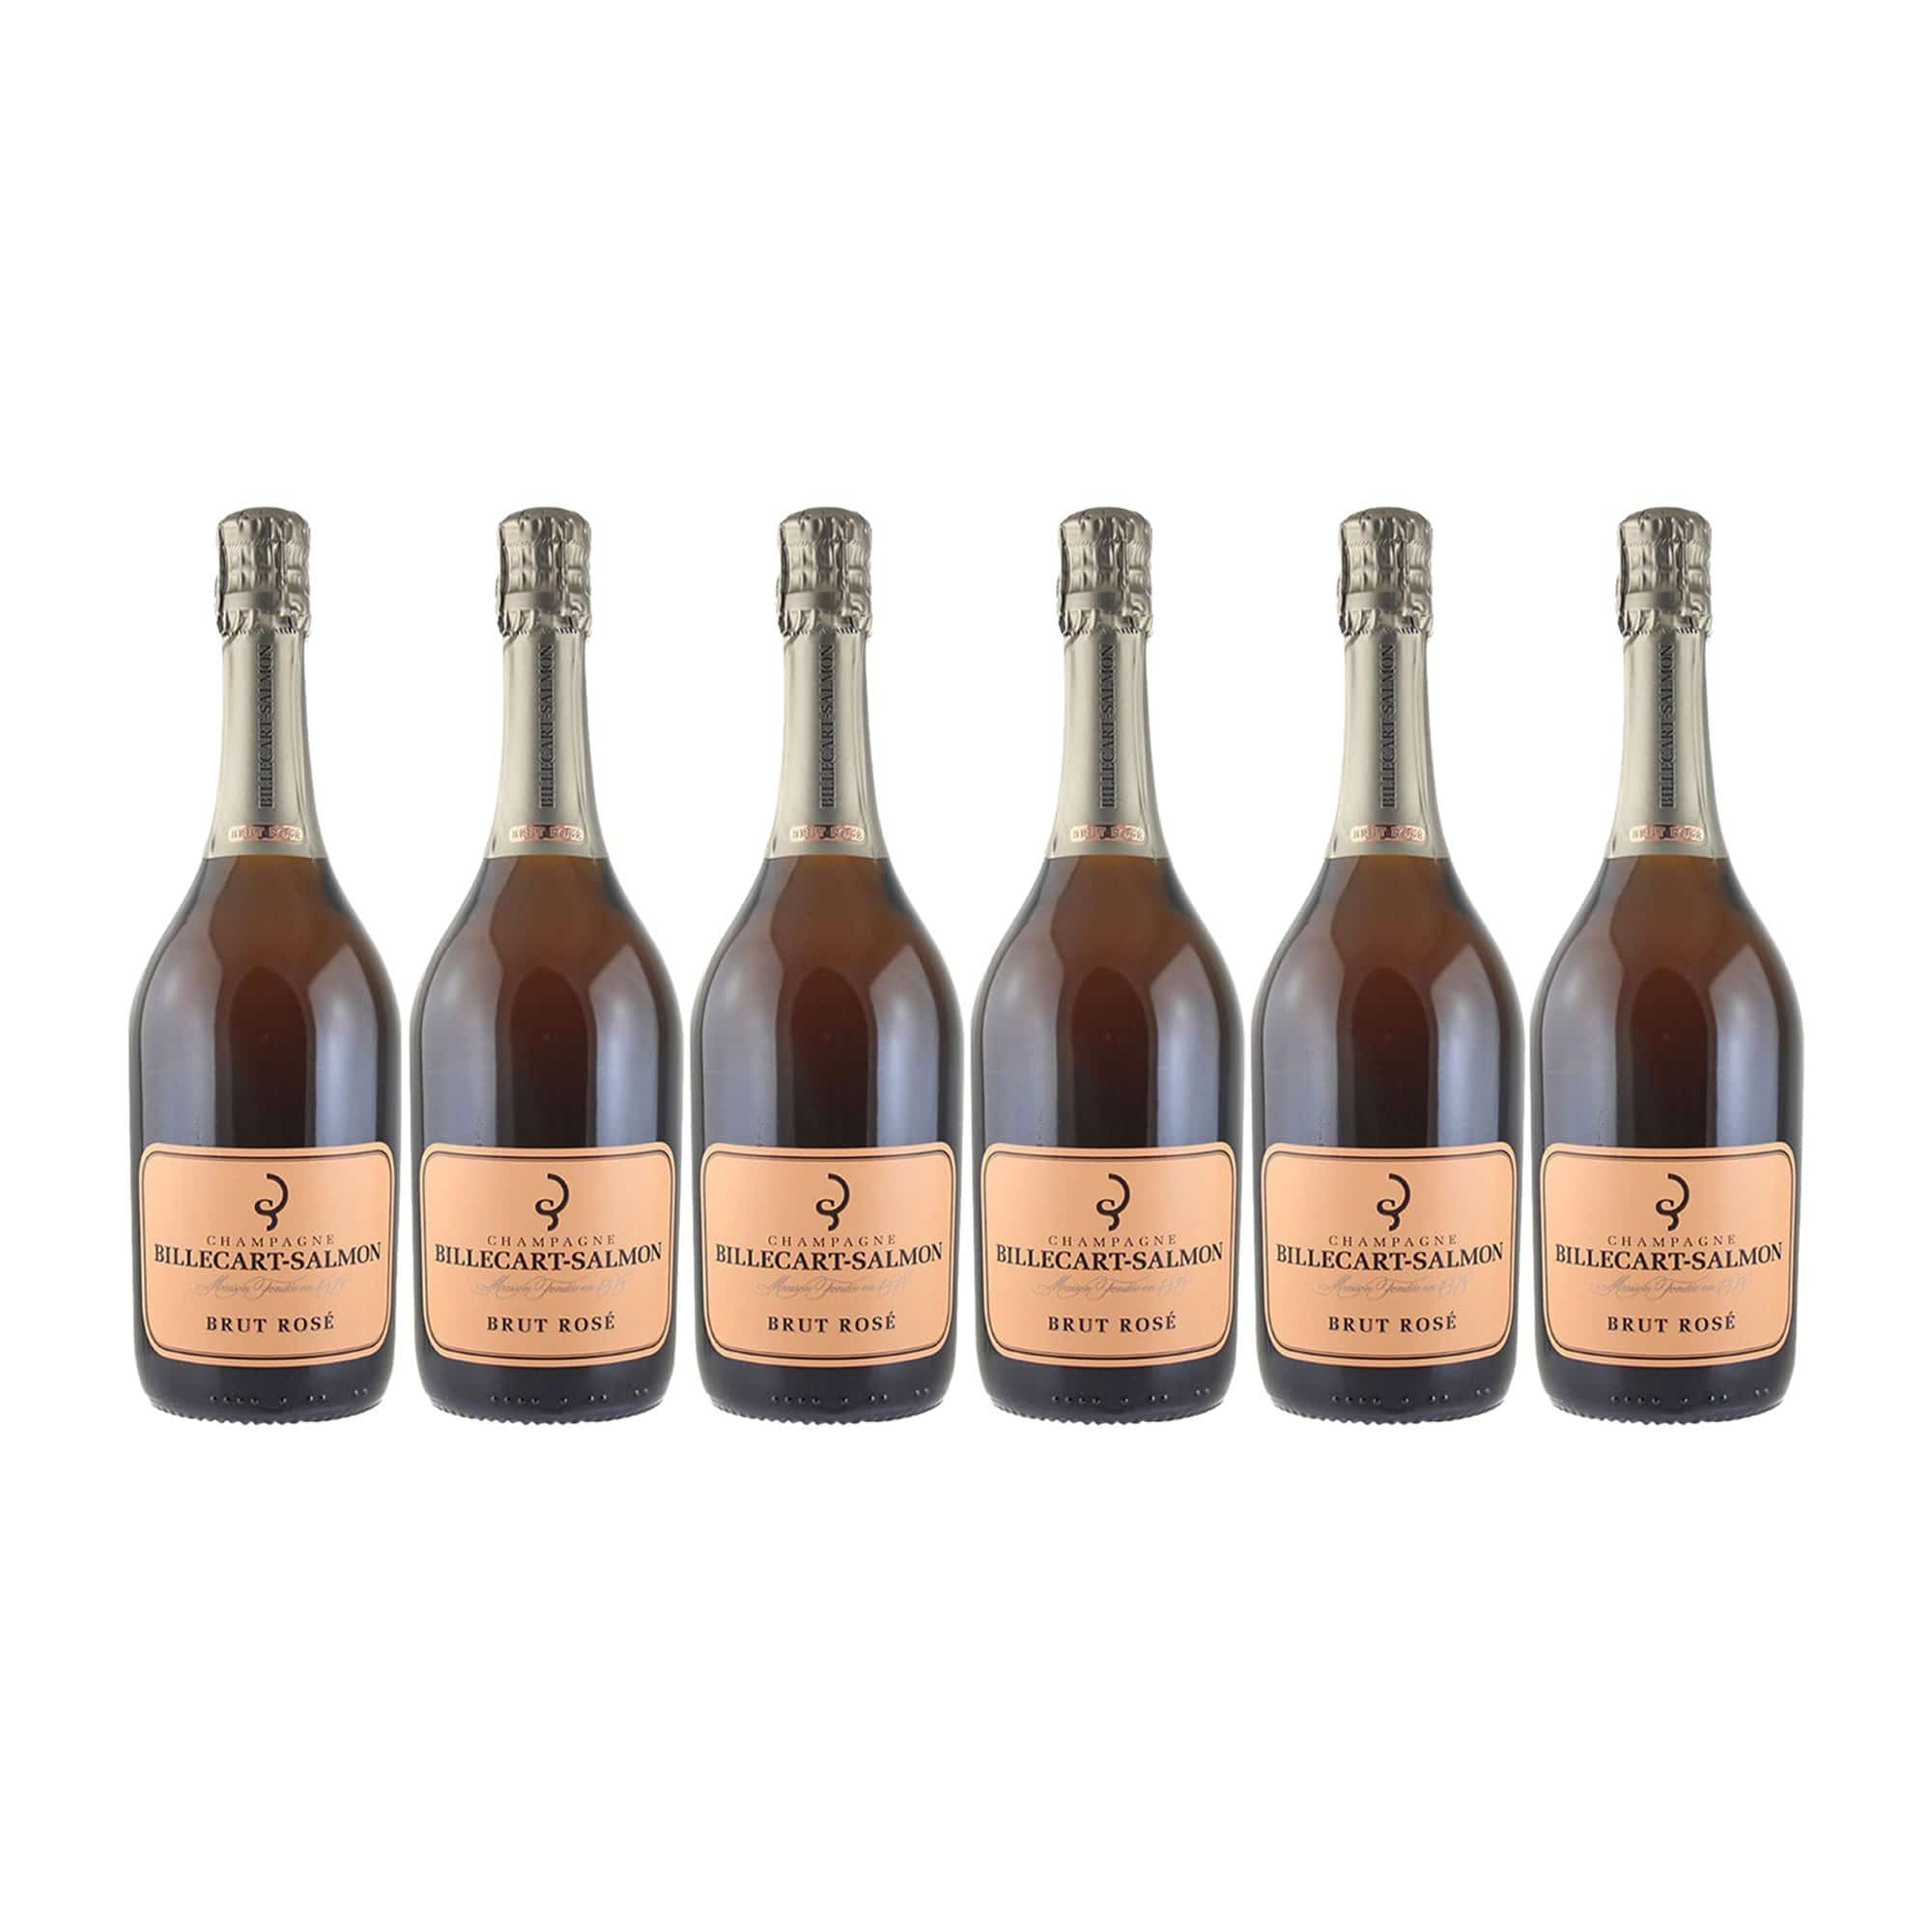 Sparkling Champagne Billecart-Salmon Brut Rosé NV (Case of 6 bottles)